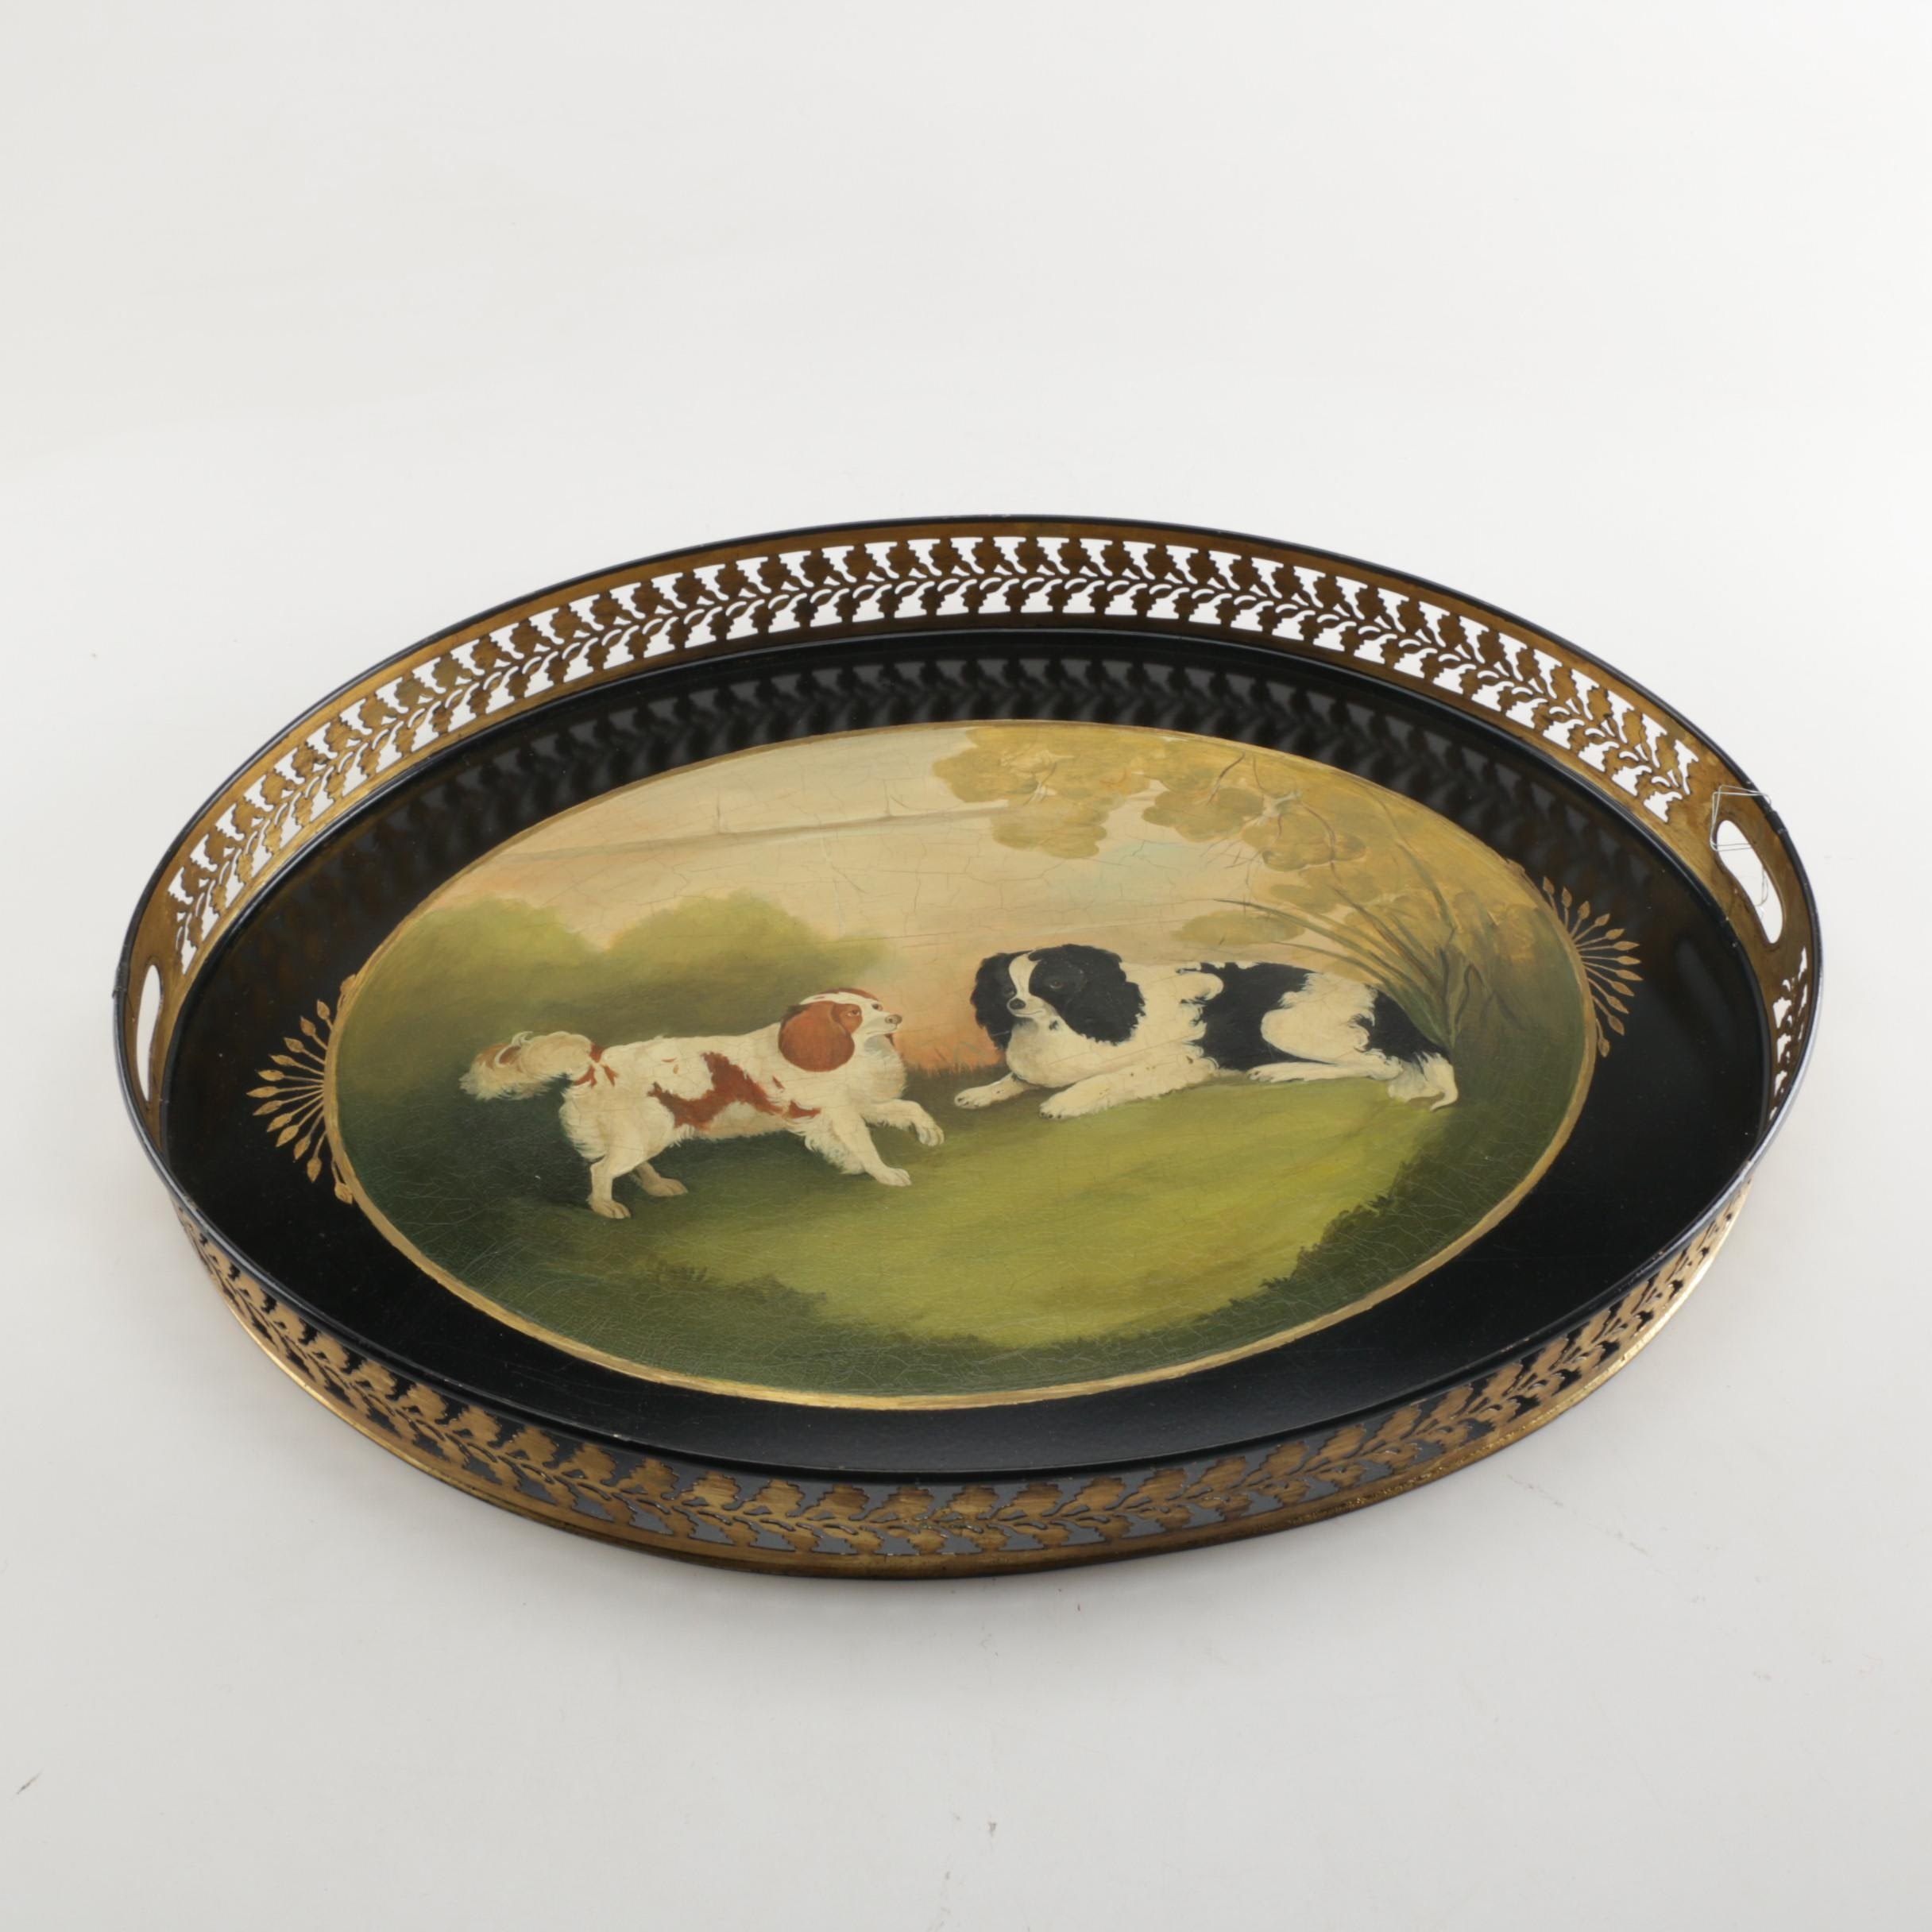 Vintage Hand-Painted Cavalier King Charles Spaniel Oval Serving Tray